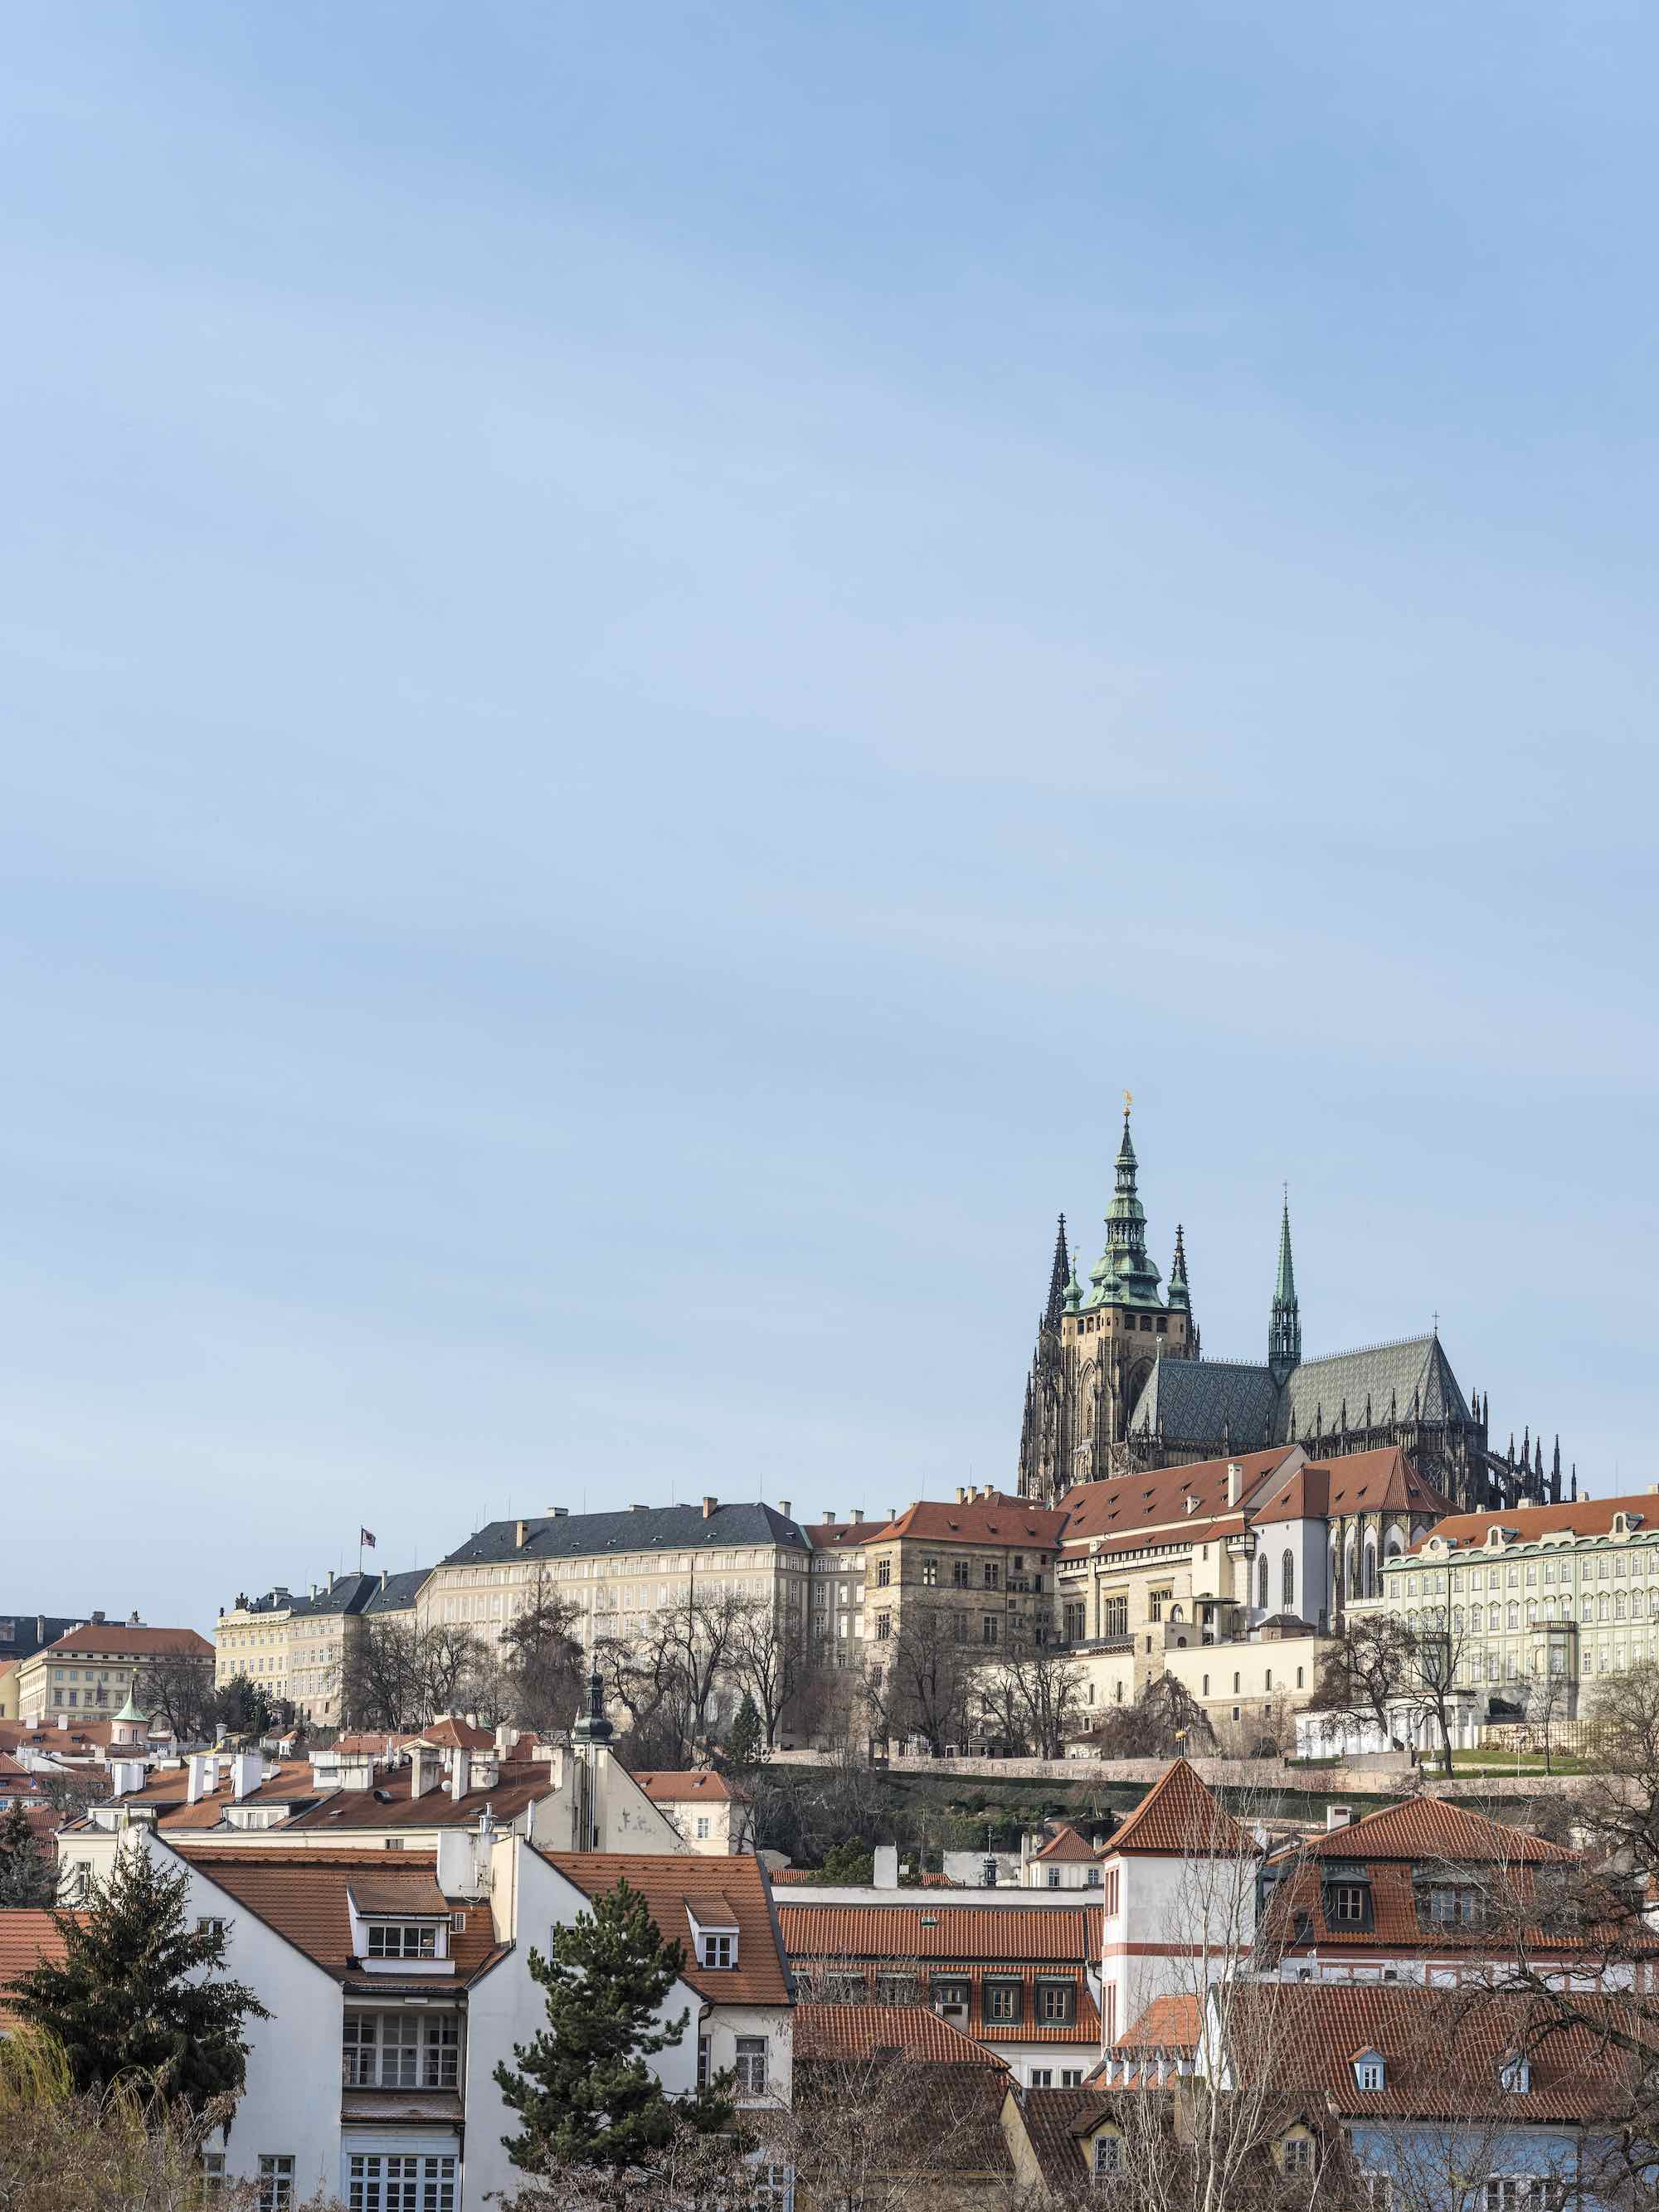 Tourism Travel Photography services commercial - Czech Republic Prague